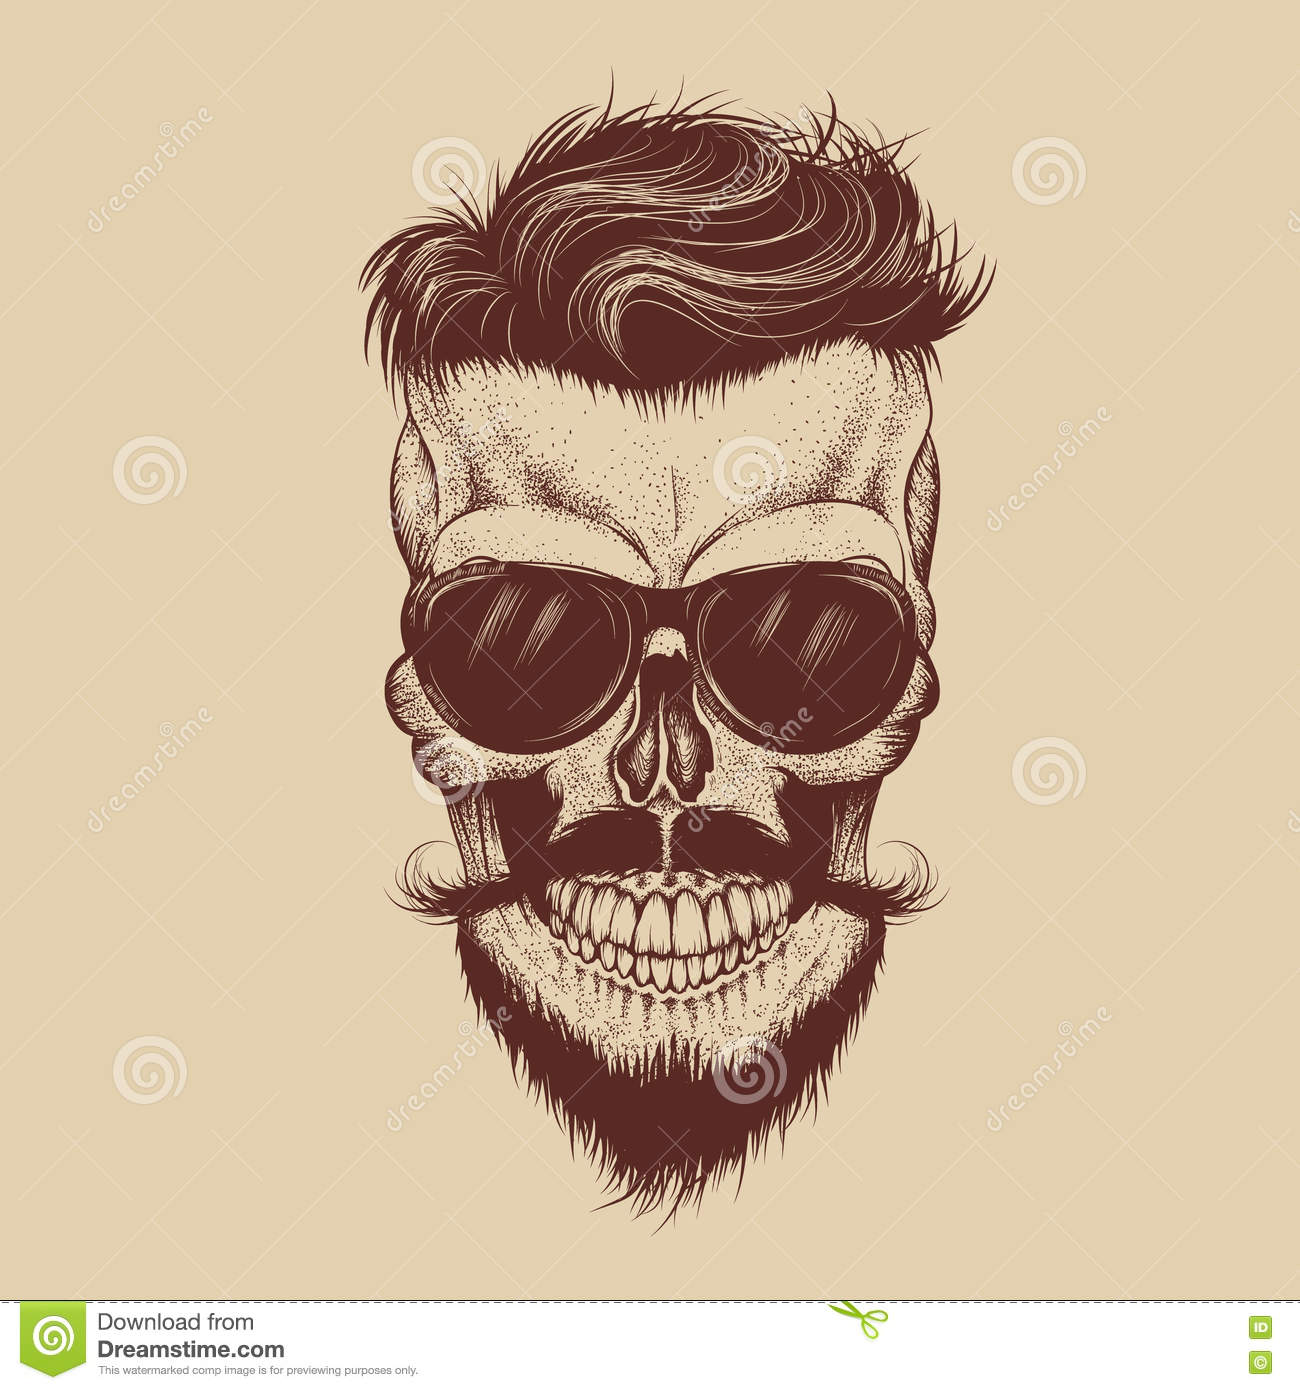 Hipster Skull With Sunglasses Mustache And Beard Vector Illustration